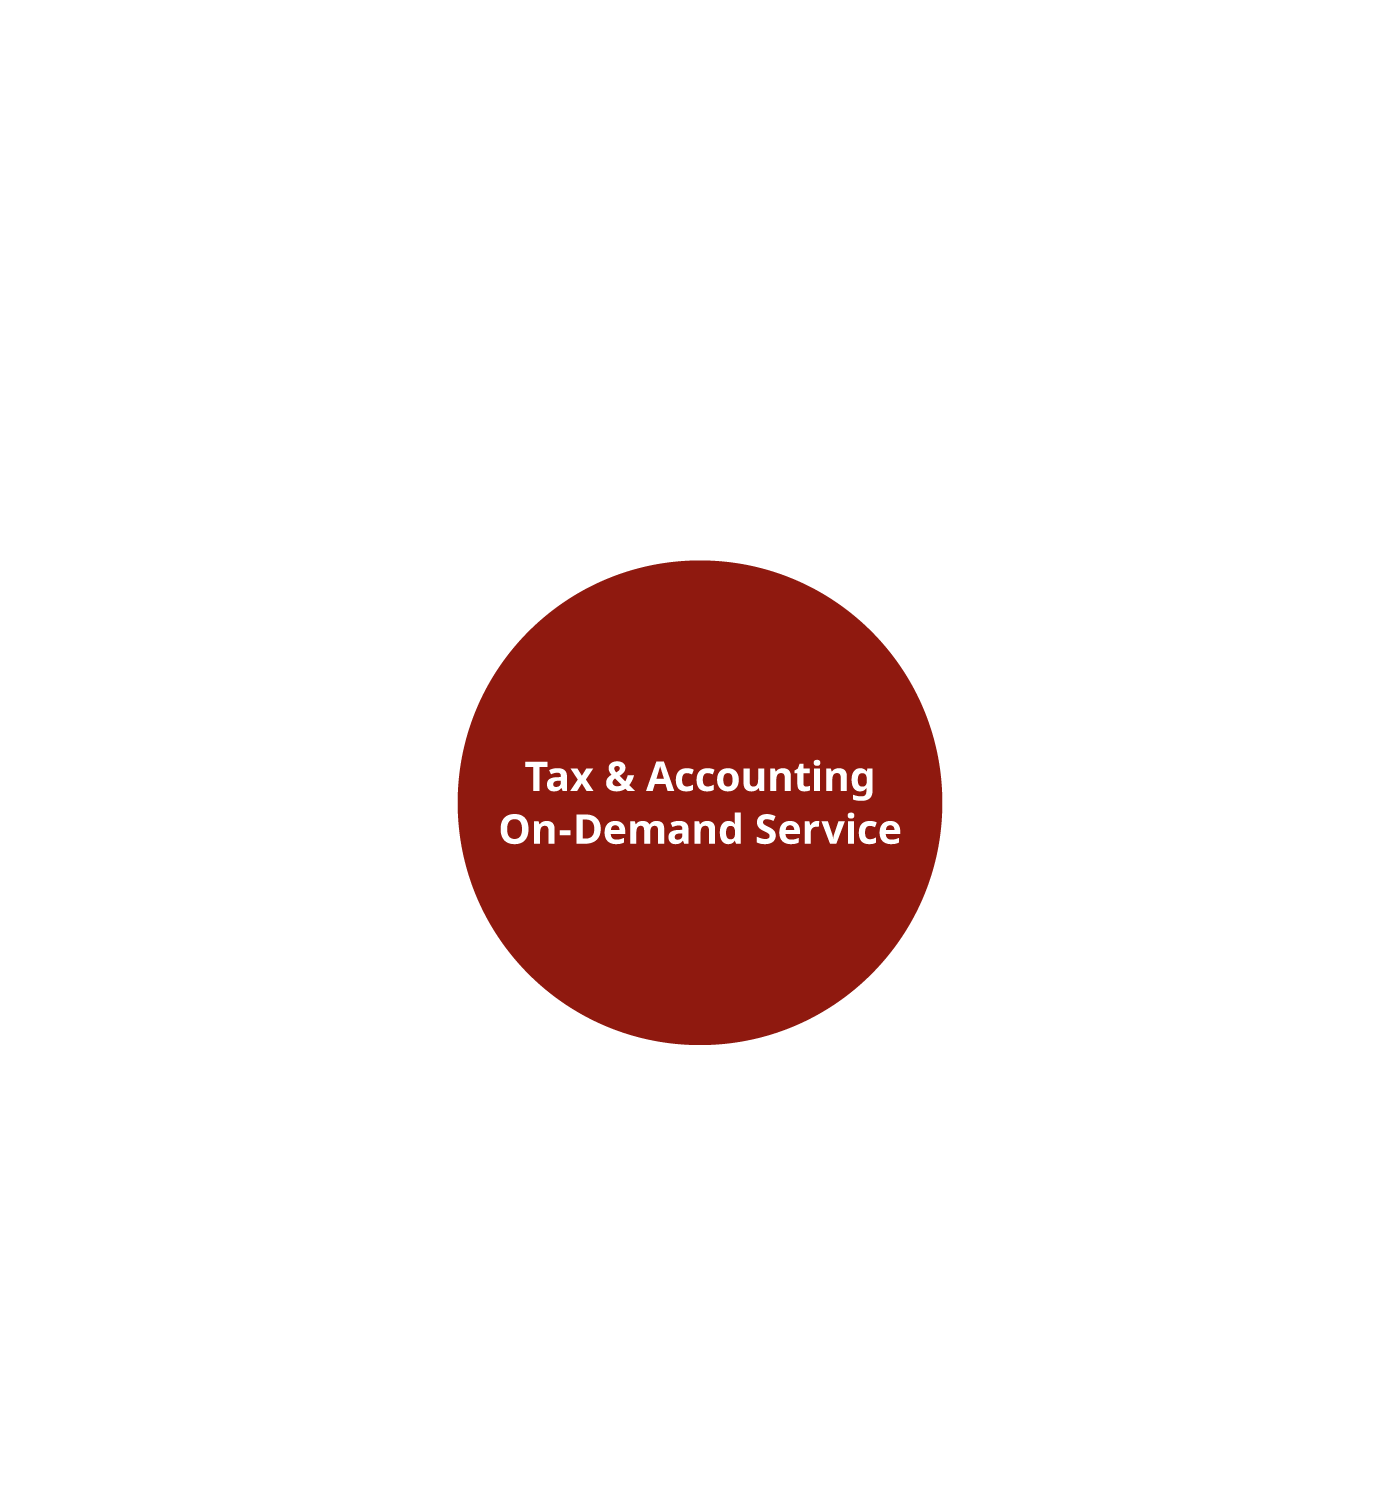 Business Tax Return / Business Accounting / Payroll Management / Tax Consolation & Strategy / BAS & IAS